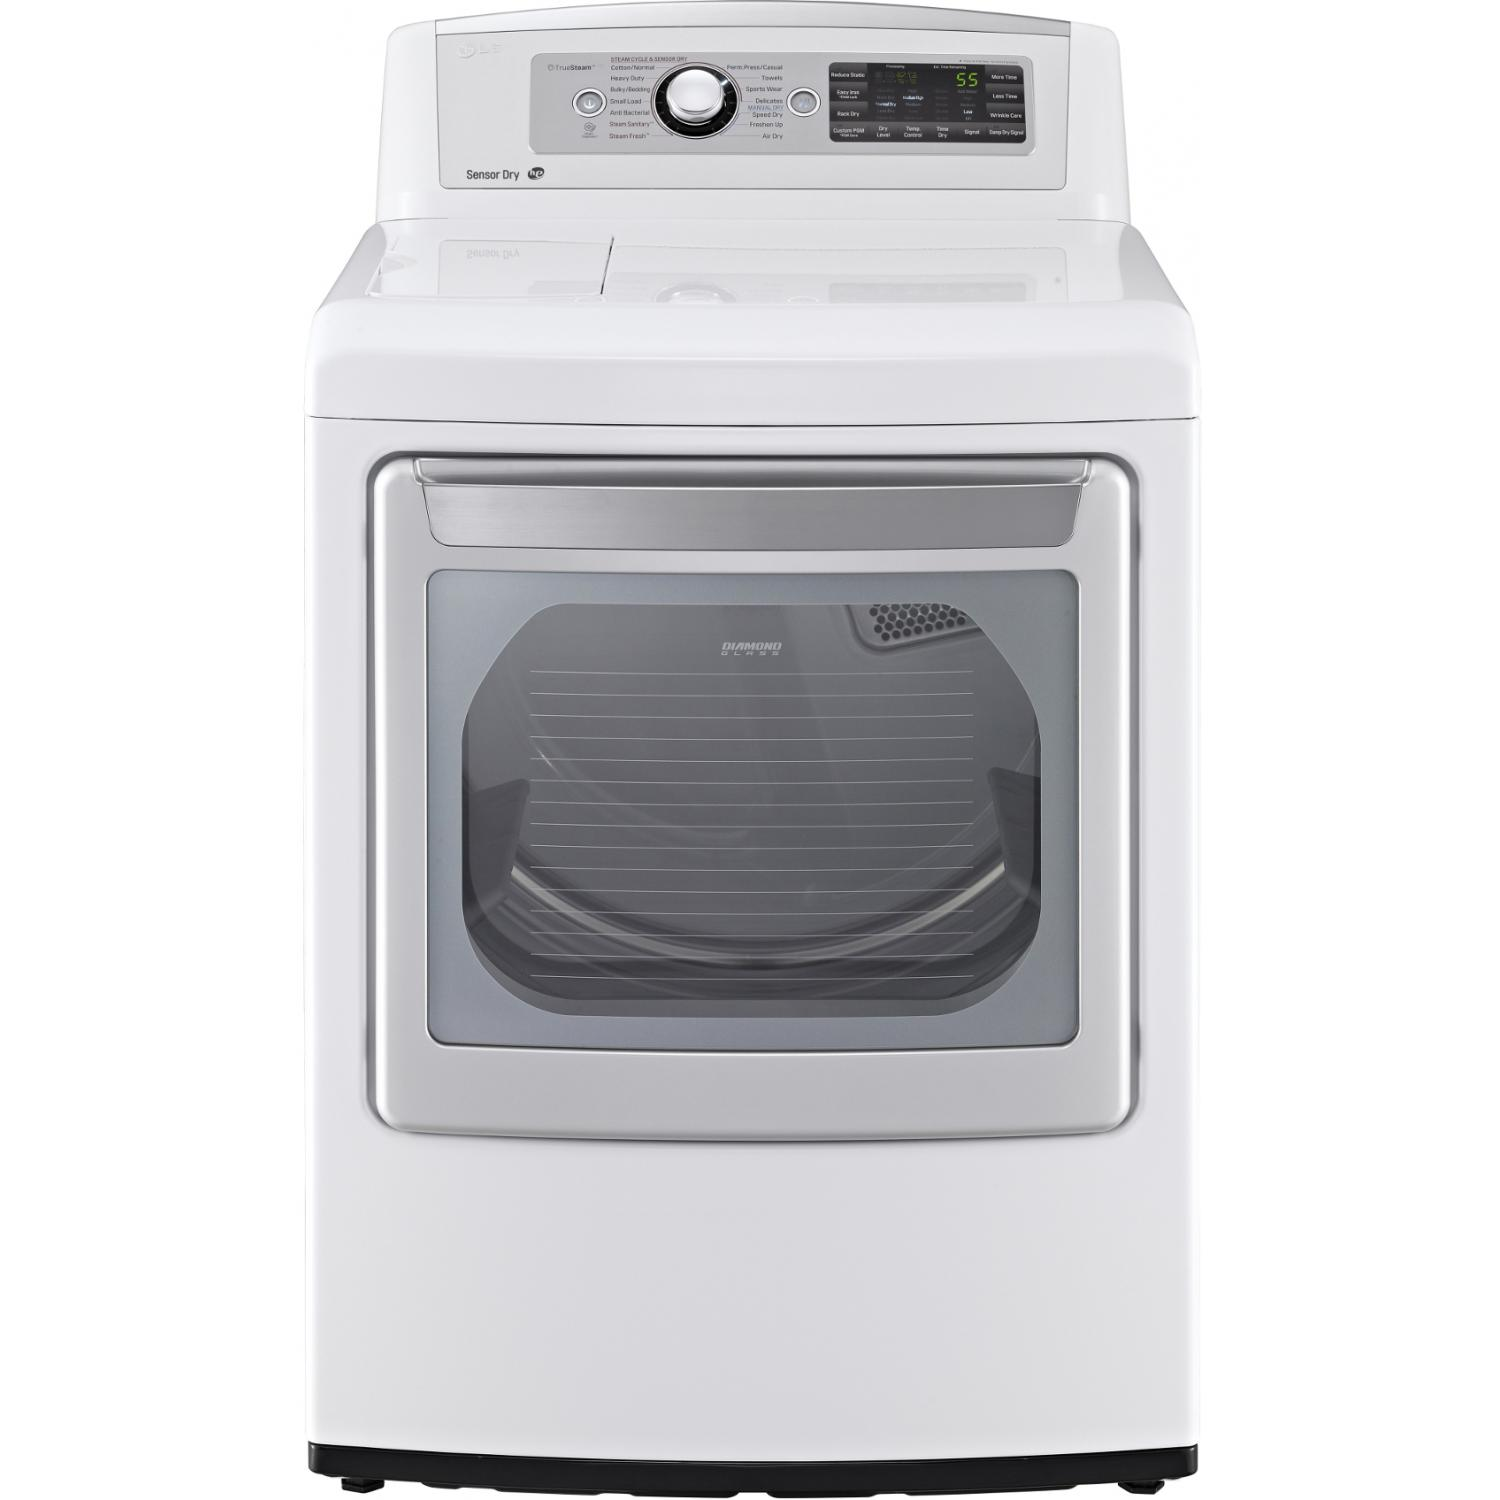 LG DLEX5680W 7.3 Cu. Ft. SteamDryer Front Load Electric Dryer - White 2890266